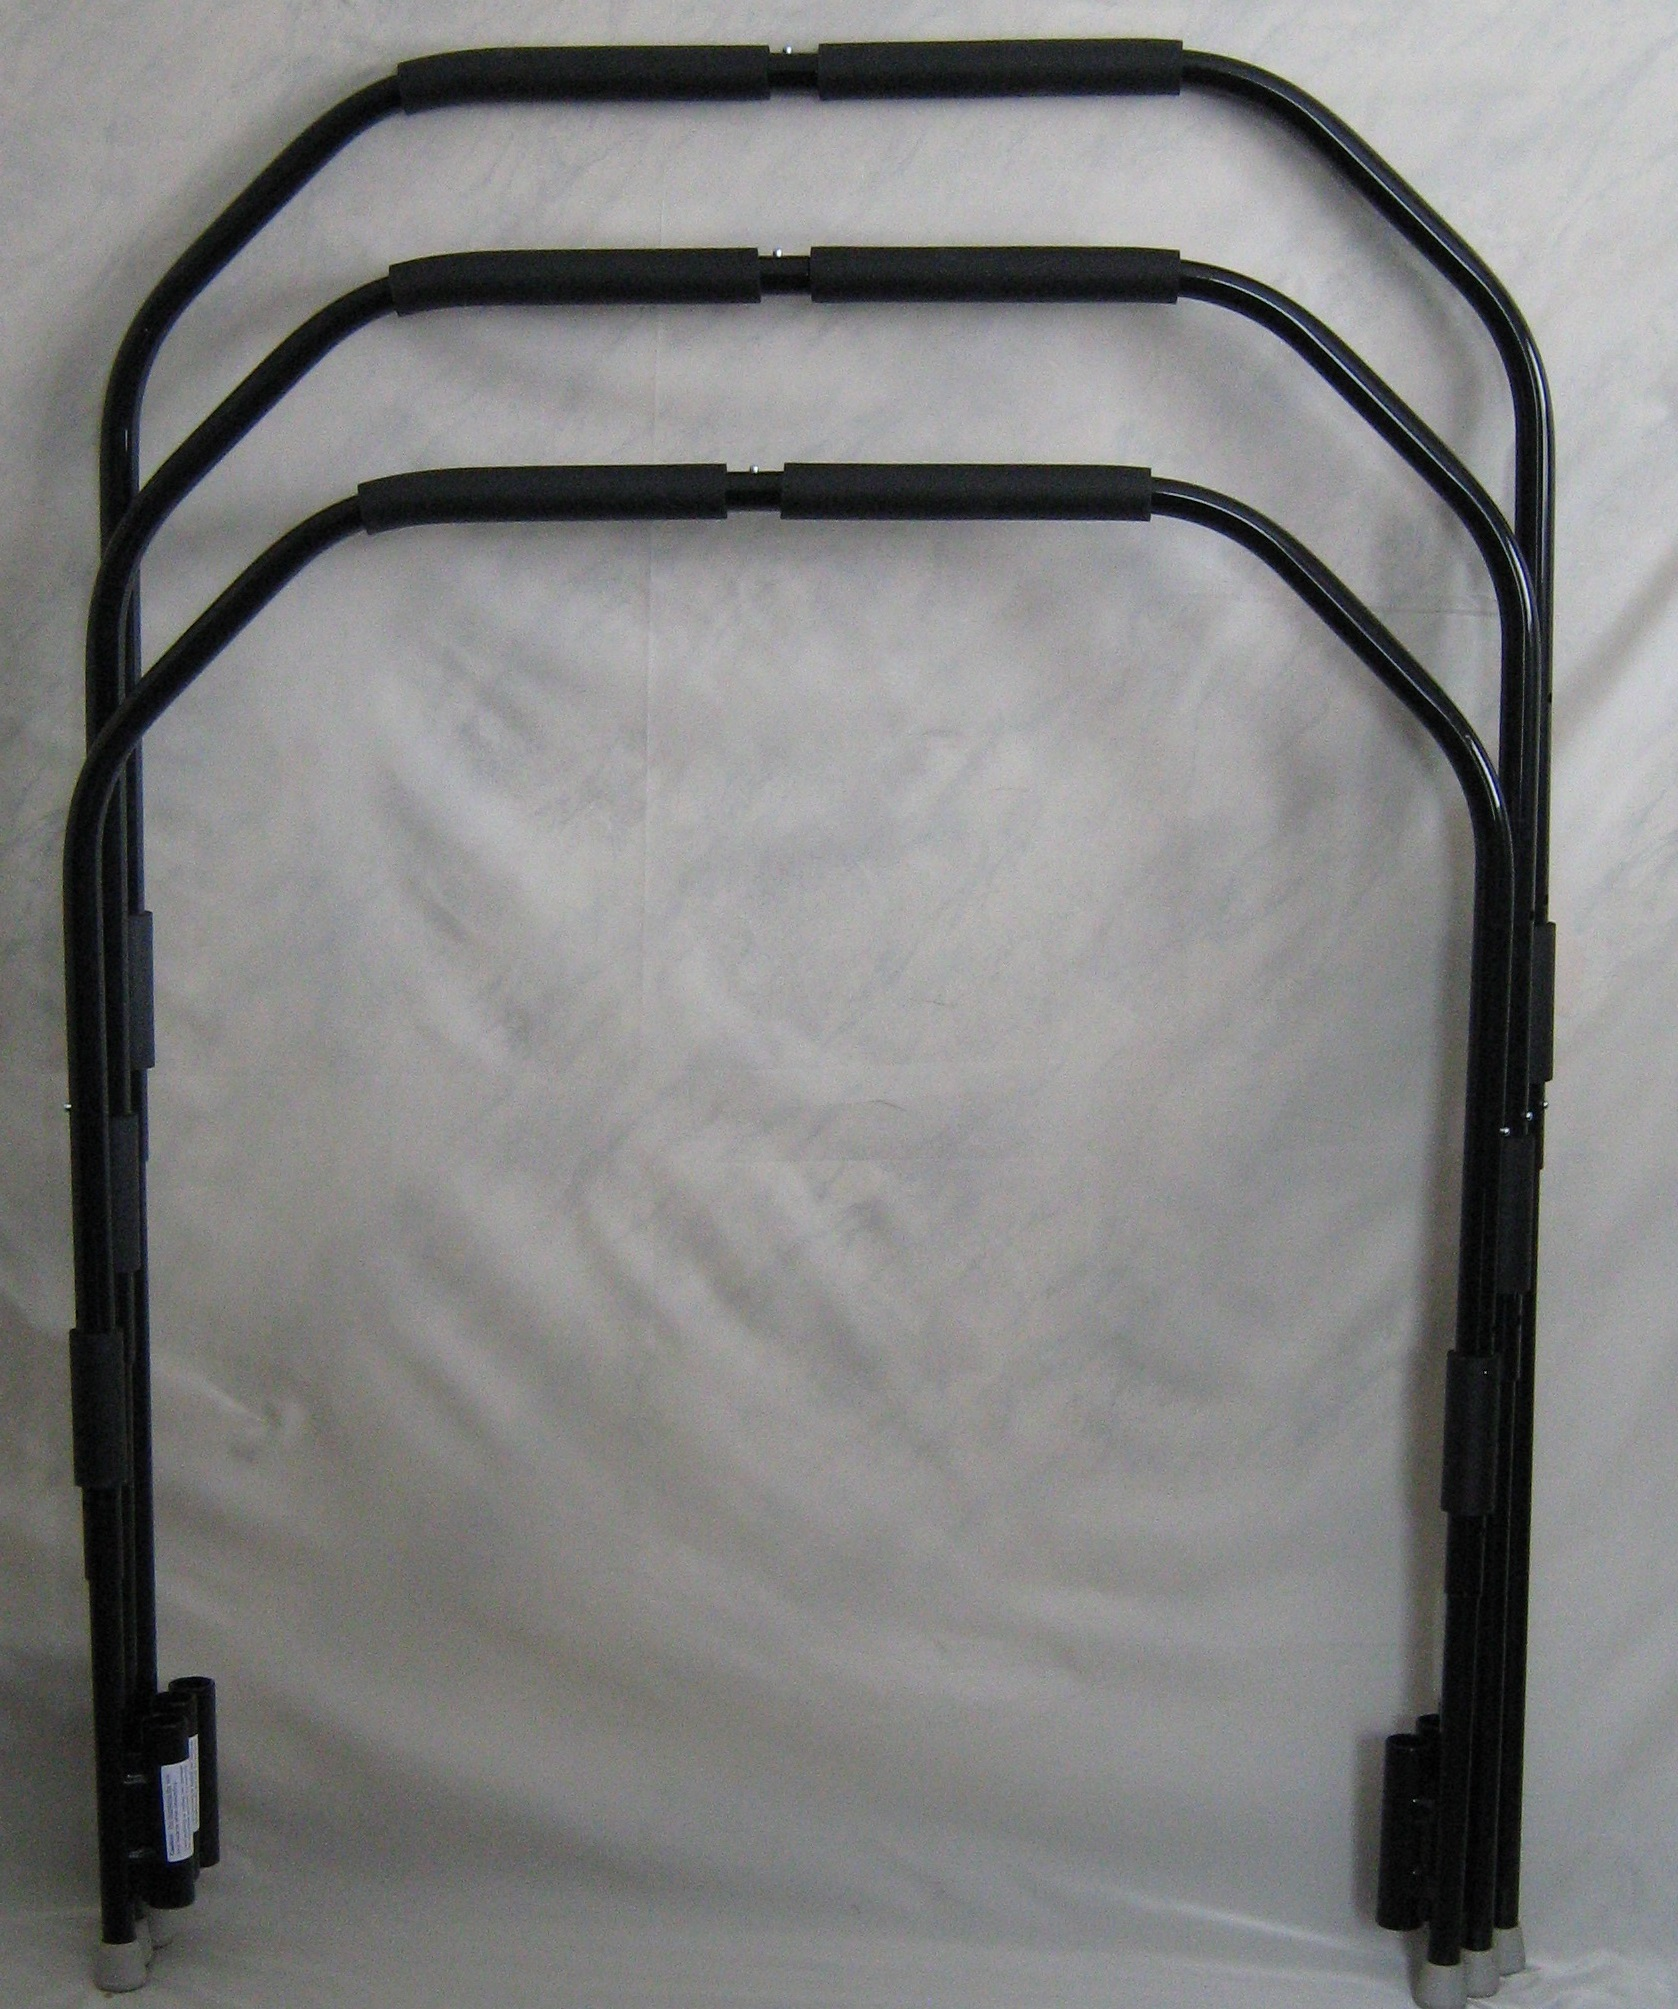 The Needak Rebounder Handle Bar Promote Confidence And